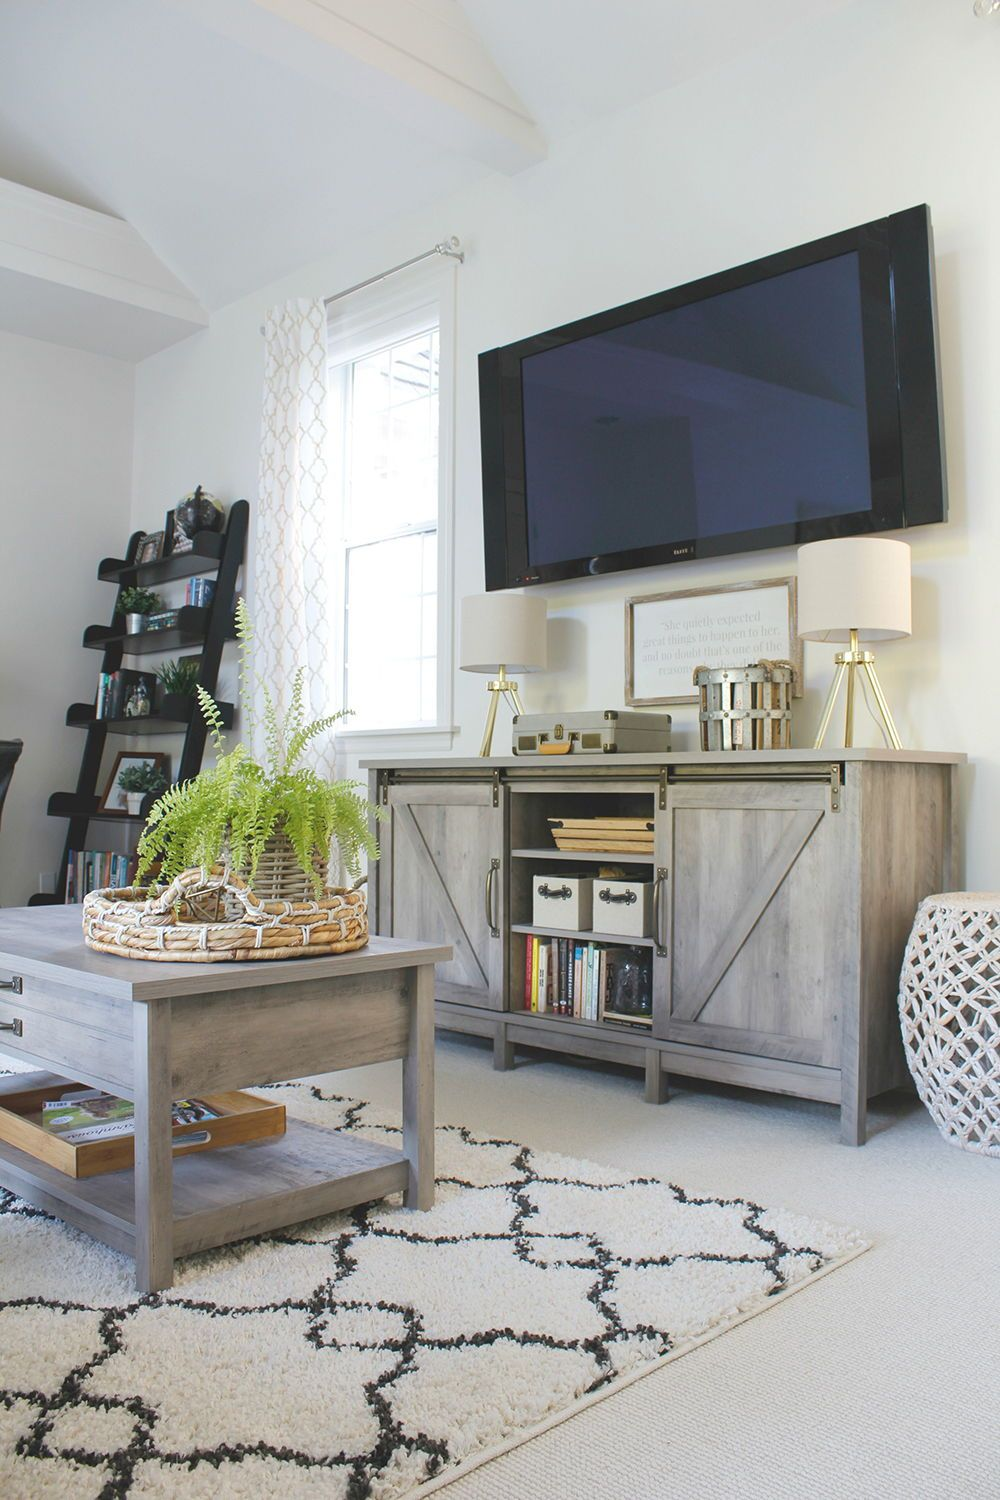 8bad031944617f2558092f6a835e98dc - Better Homes And Gardens Tv Stand Rustic